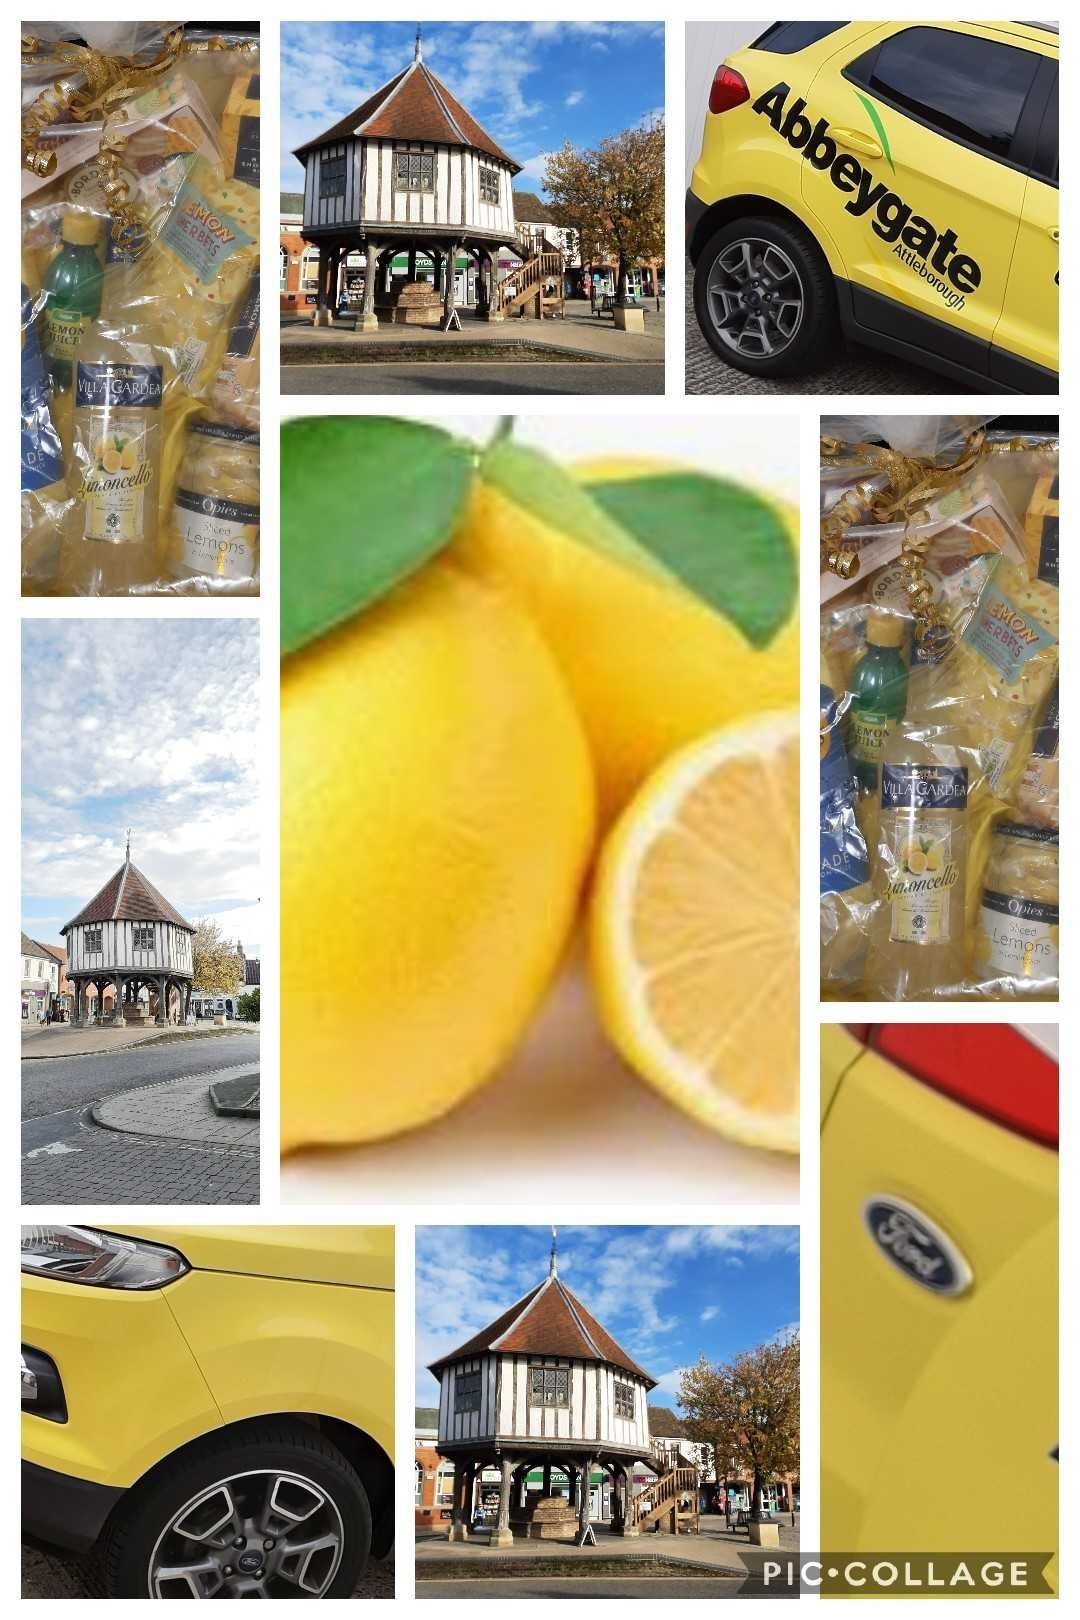 Wymondham Lemon Day - 2nd November 2019